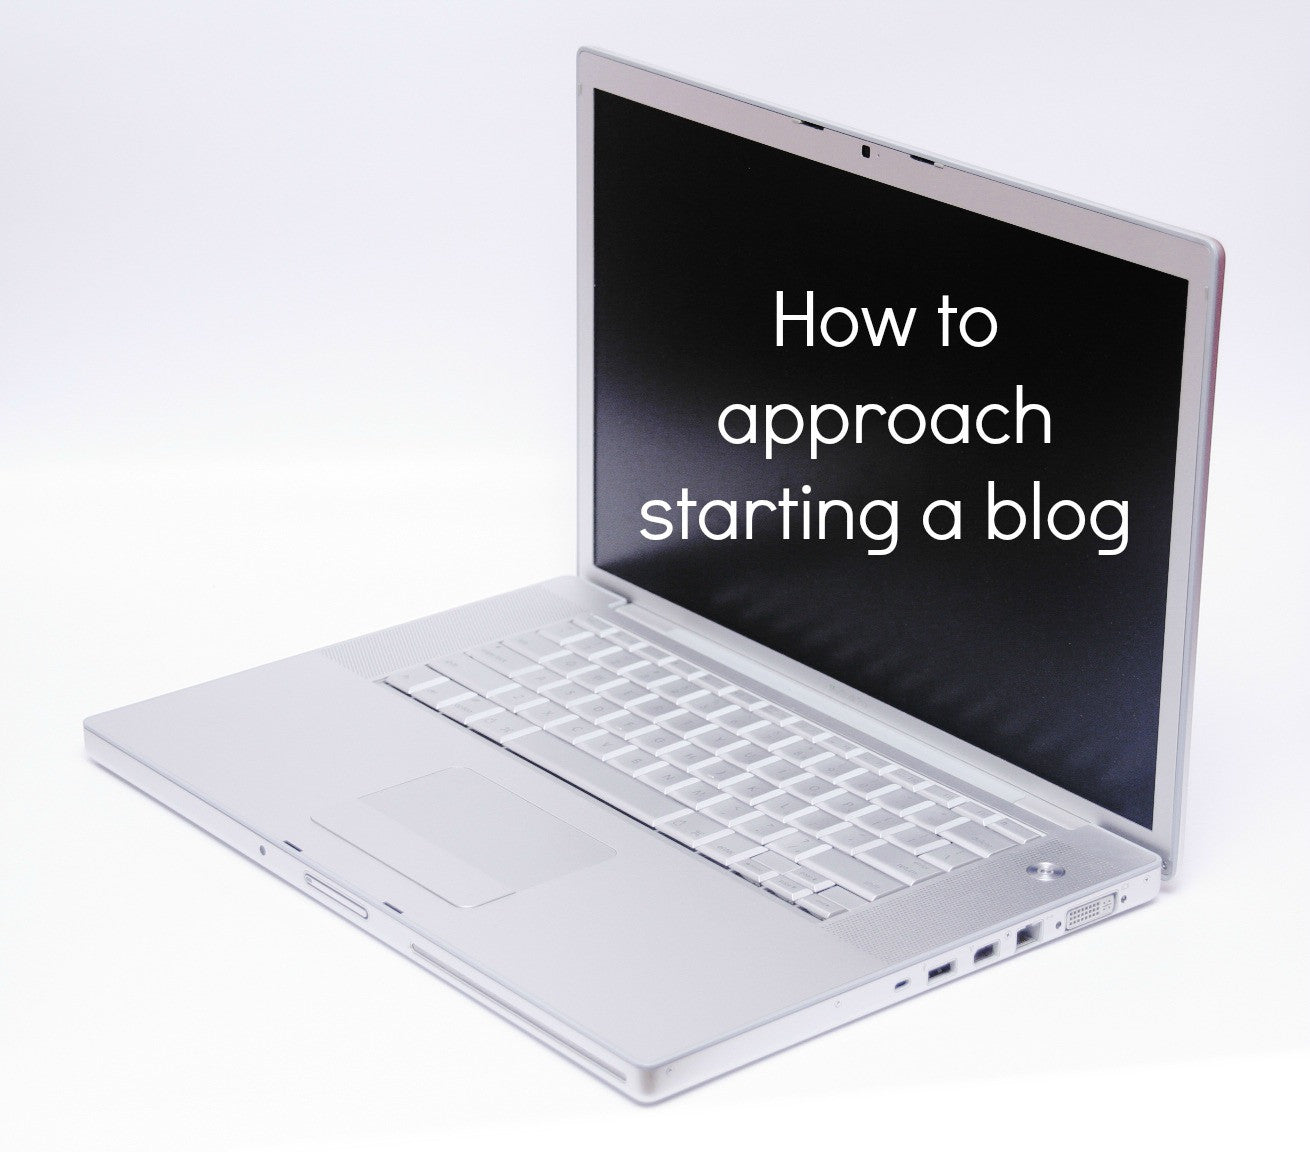 How to approach starting a blog